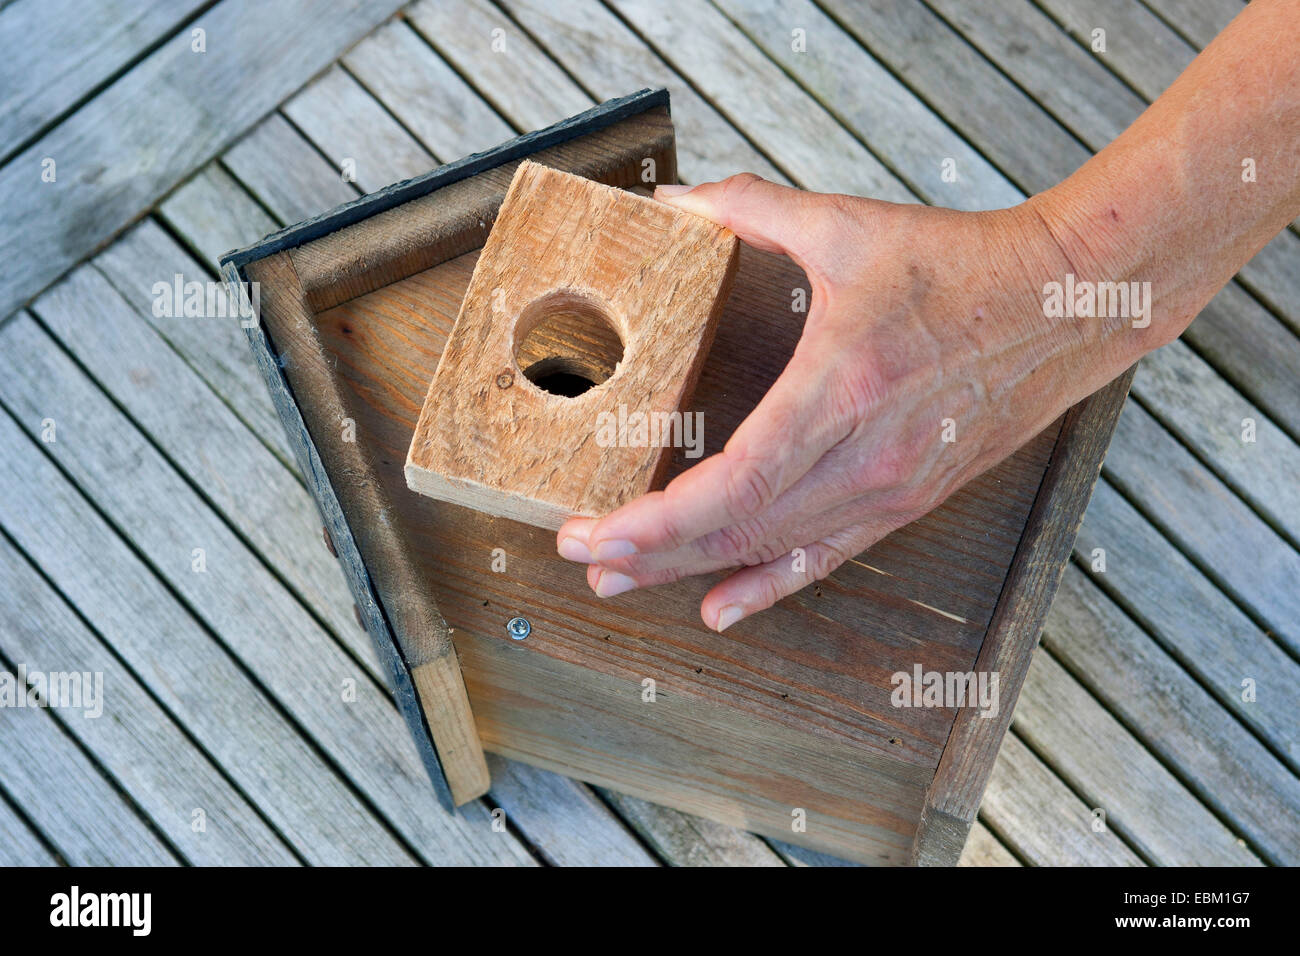 nest box with home-made marten protection, Germany Stock Photo